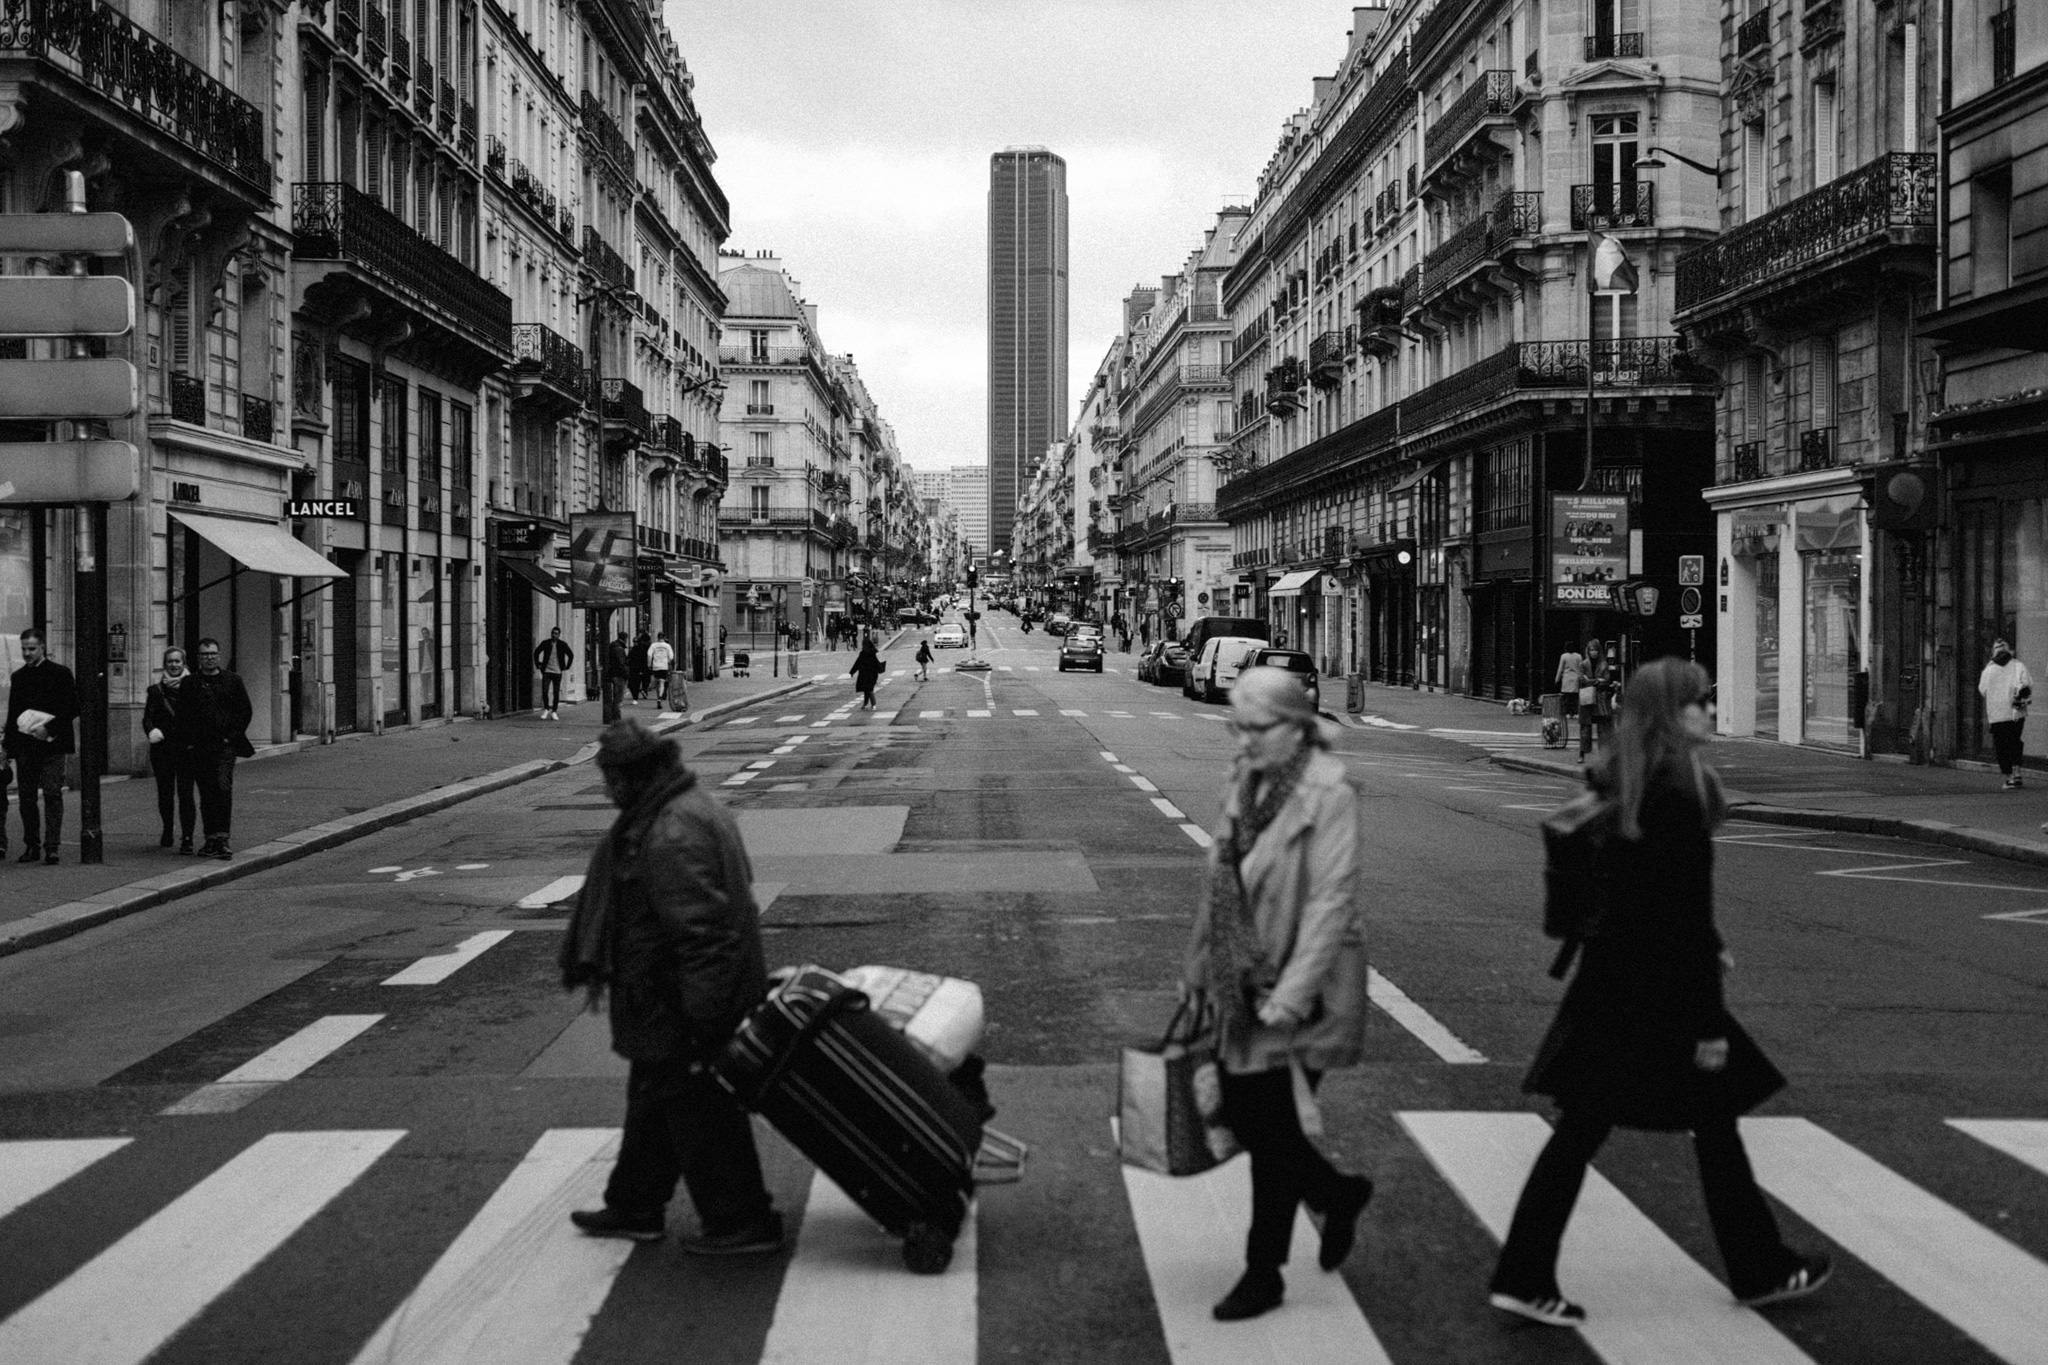 People crossing street on crossover in Paris, France